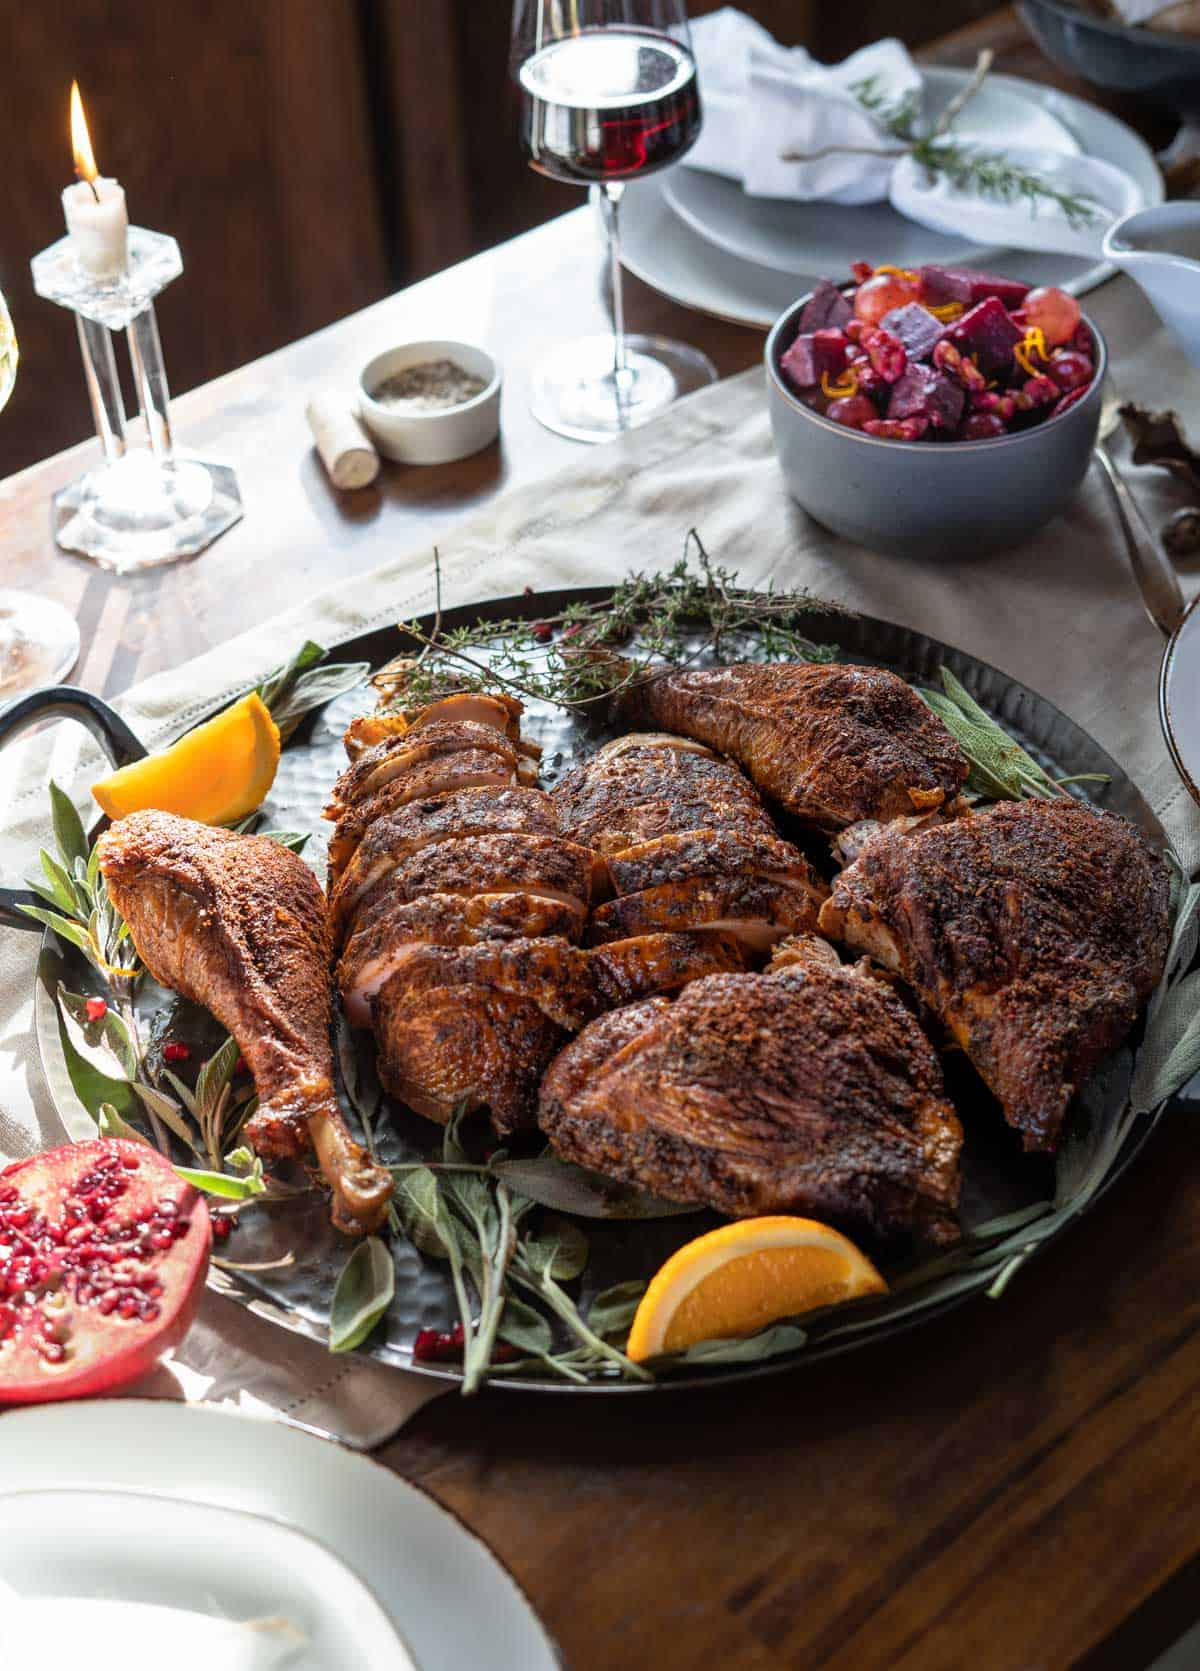 A Smoked Turkey on a table with other Thanksgiving side dishes in a lovely holiday tablescape